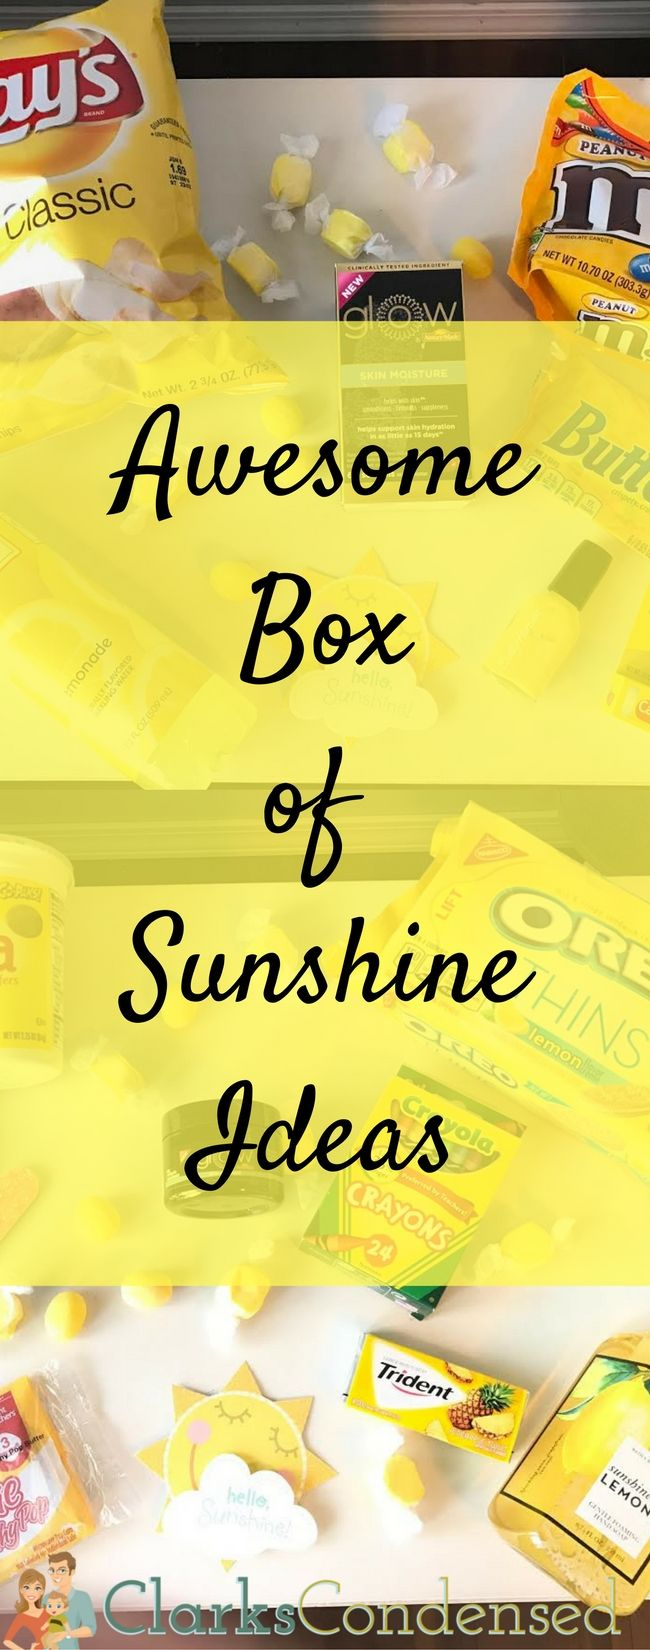 Love this sweet idea to send someone a box of sunshine!